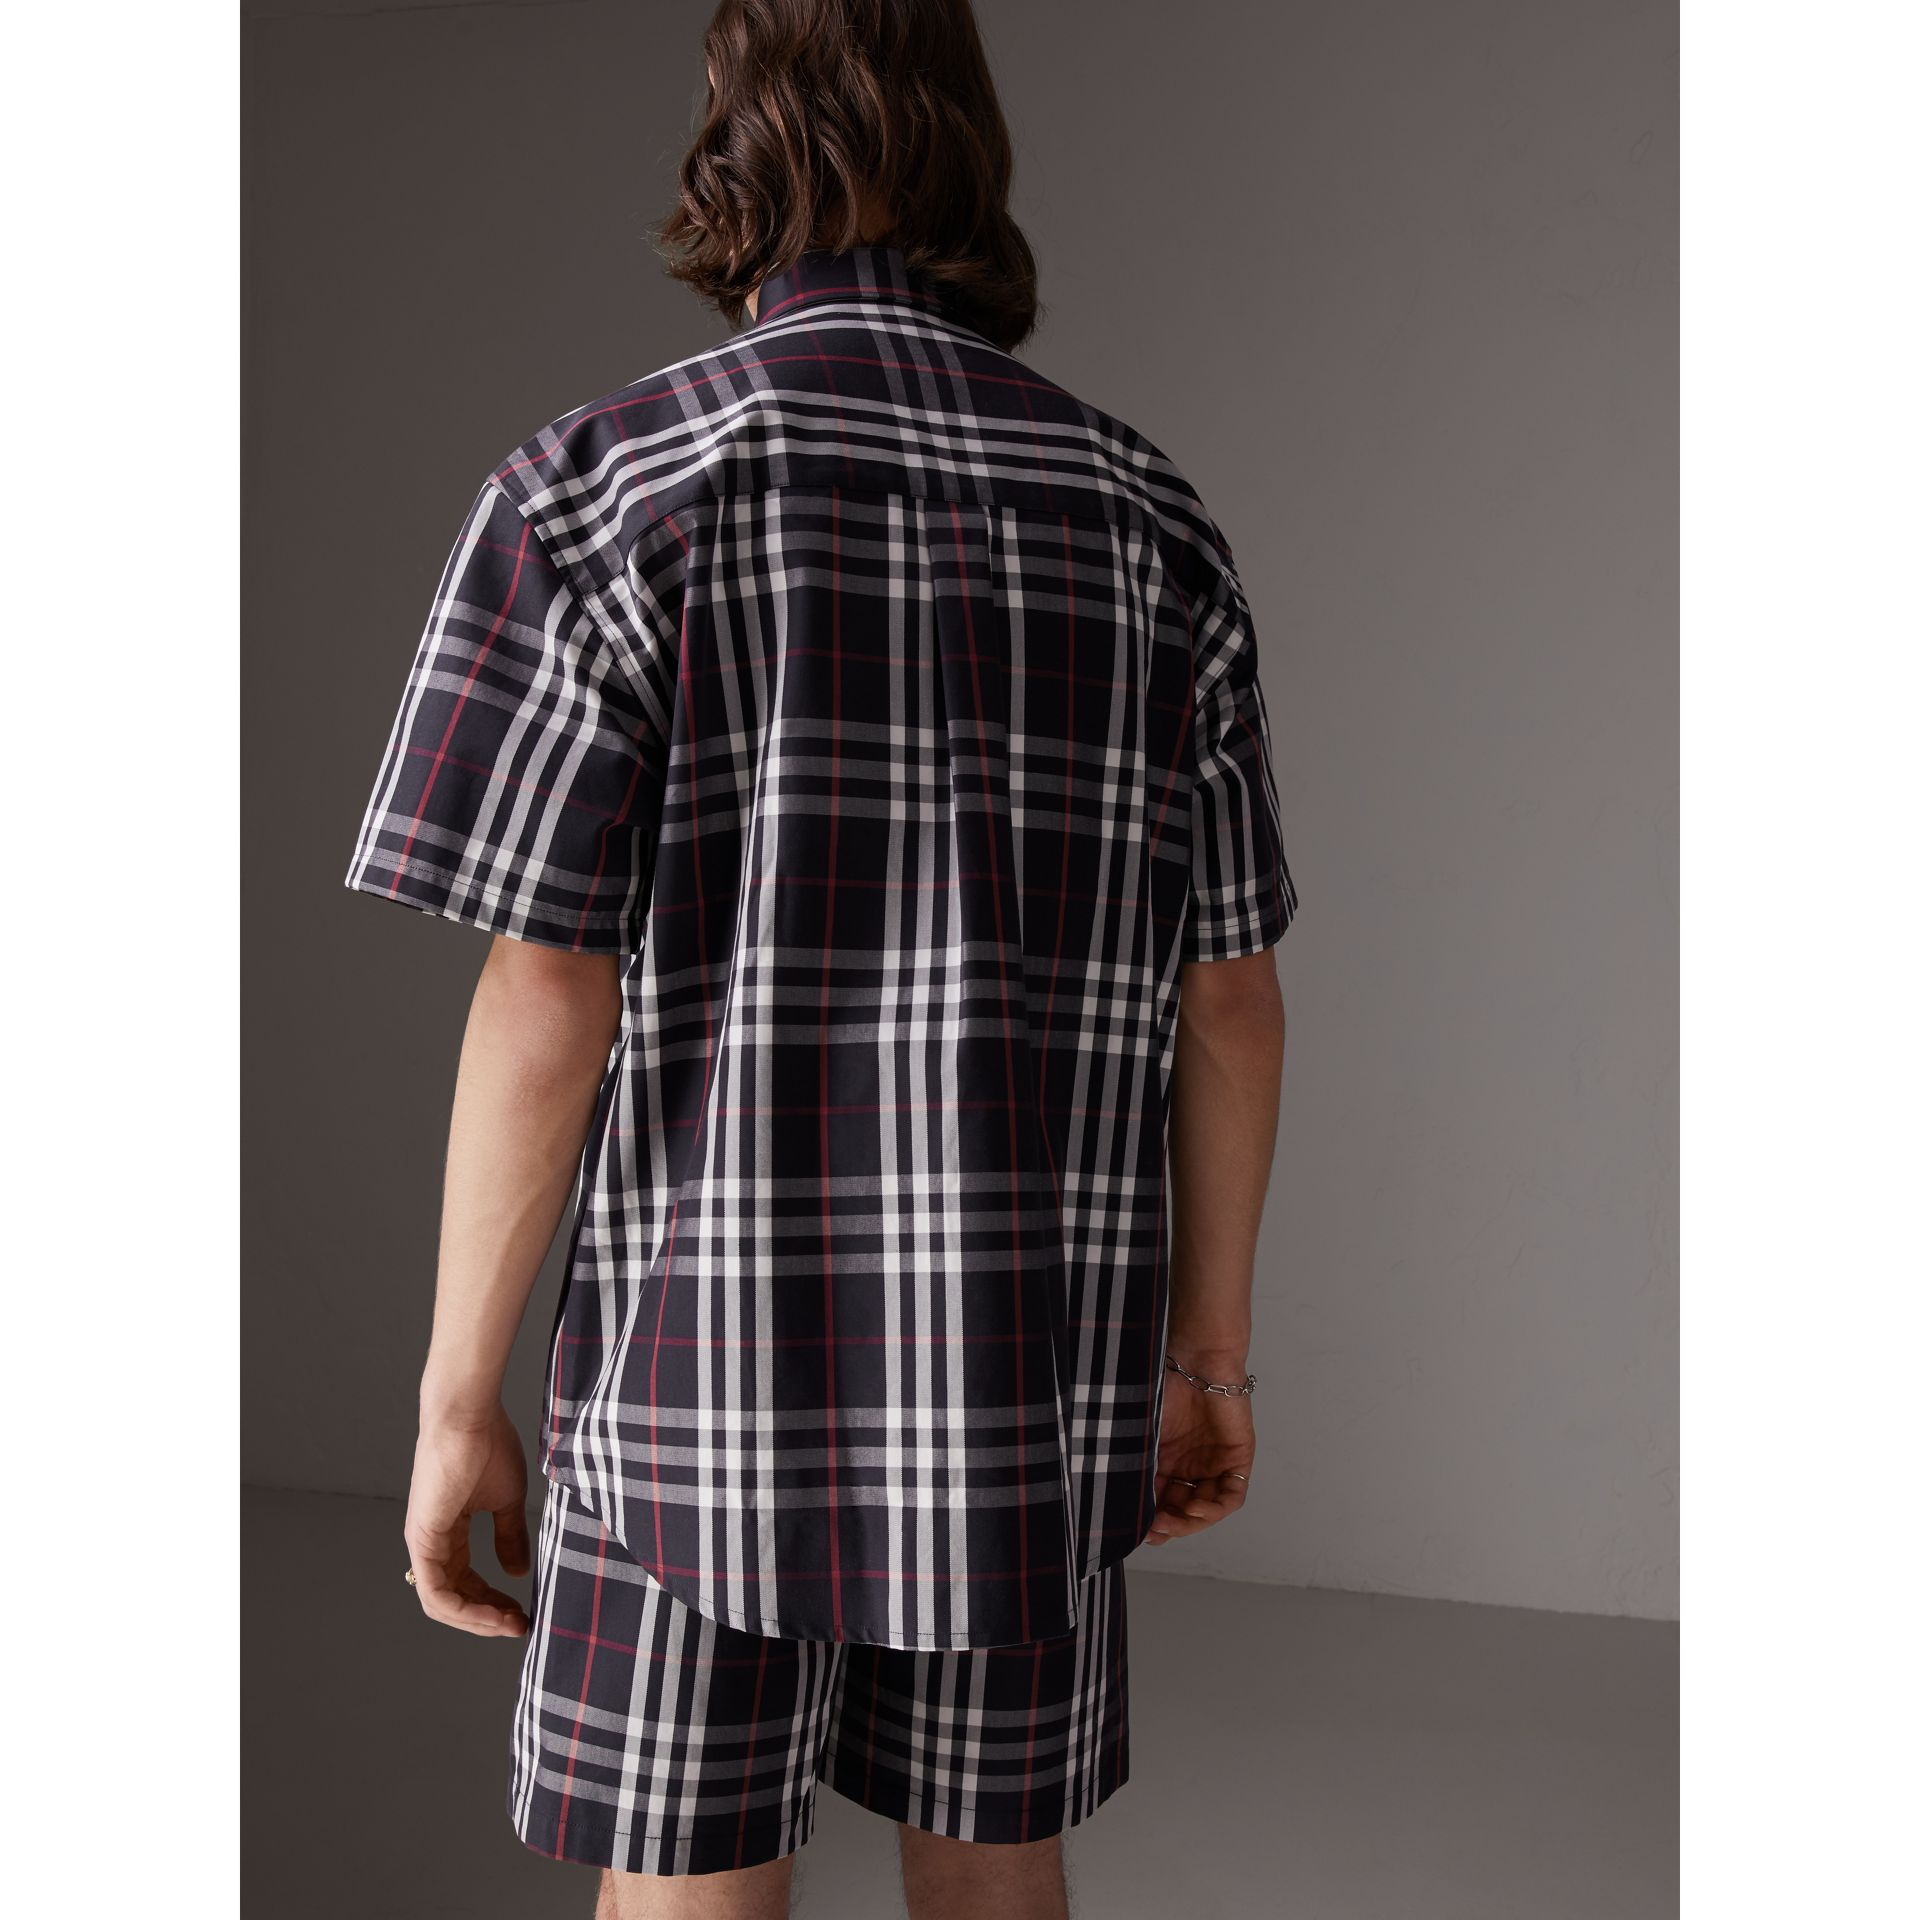 Gosha x Burberry Short-sleeve Check Shirt in Navy | Burberry United Kingdom - gallery image 5